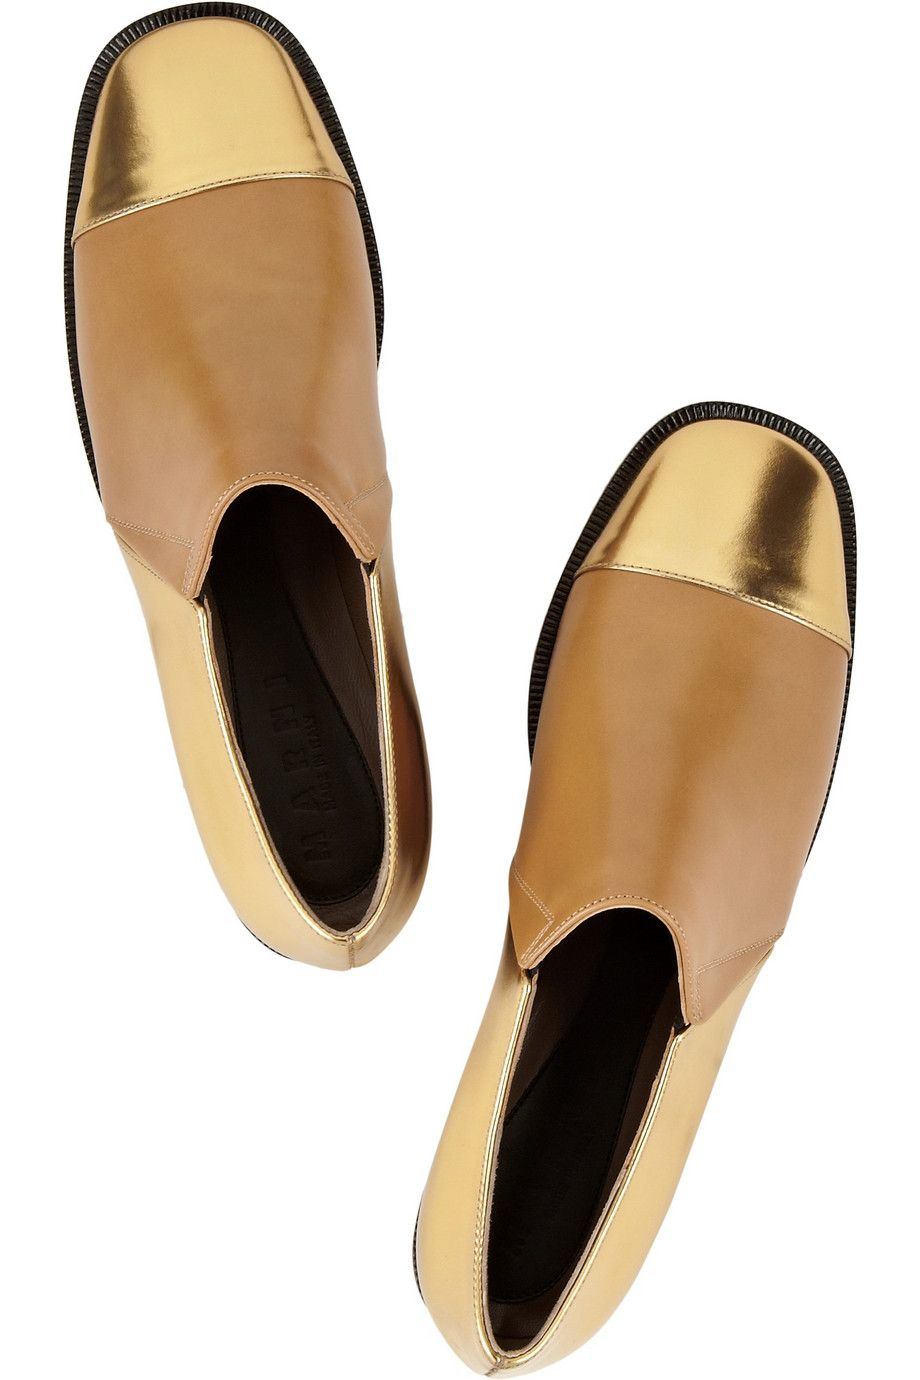 Metallic Moment: high-shine finishes lend lustre to fall. Marni|Metallic leather loafers